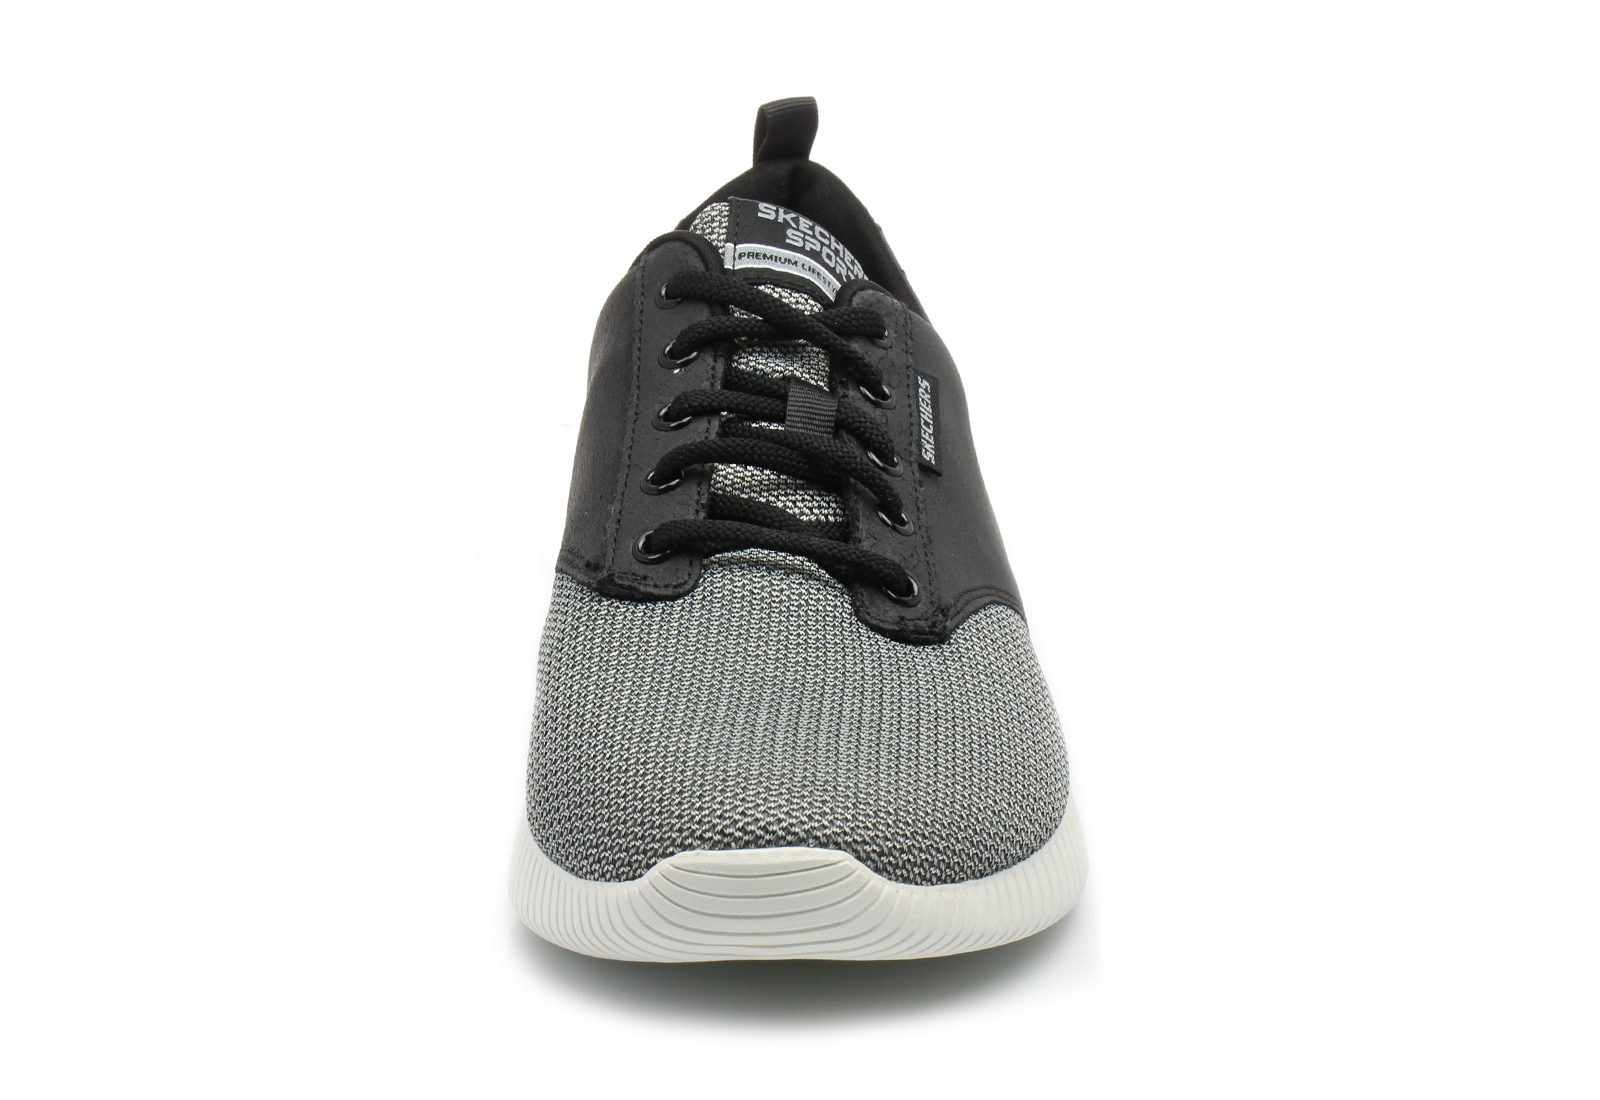 Skechers Shoes Depth Charge Trahan 52398 bkgy Online shop for sneakers, shoes and boots